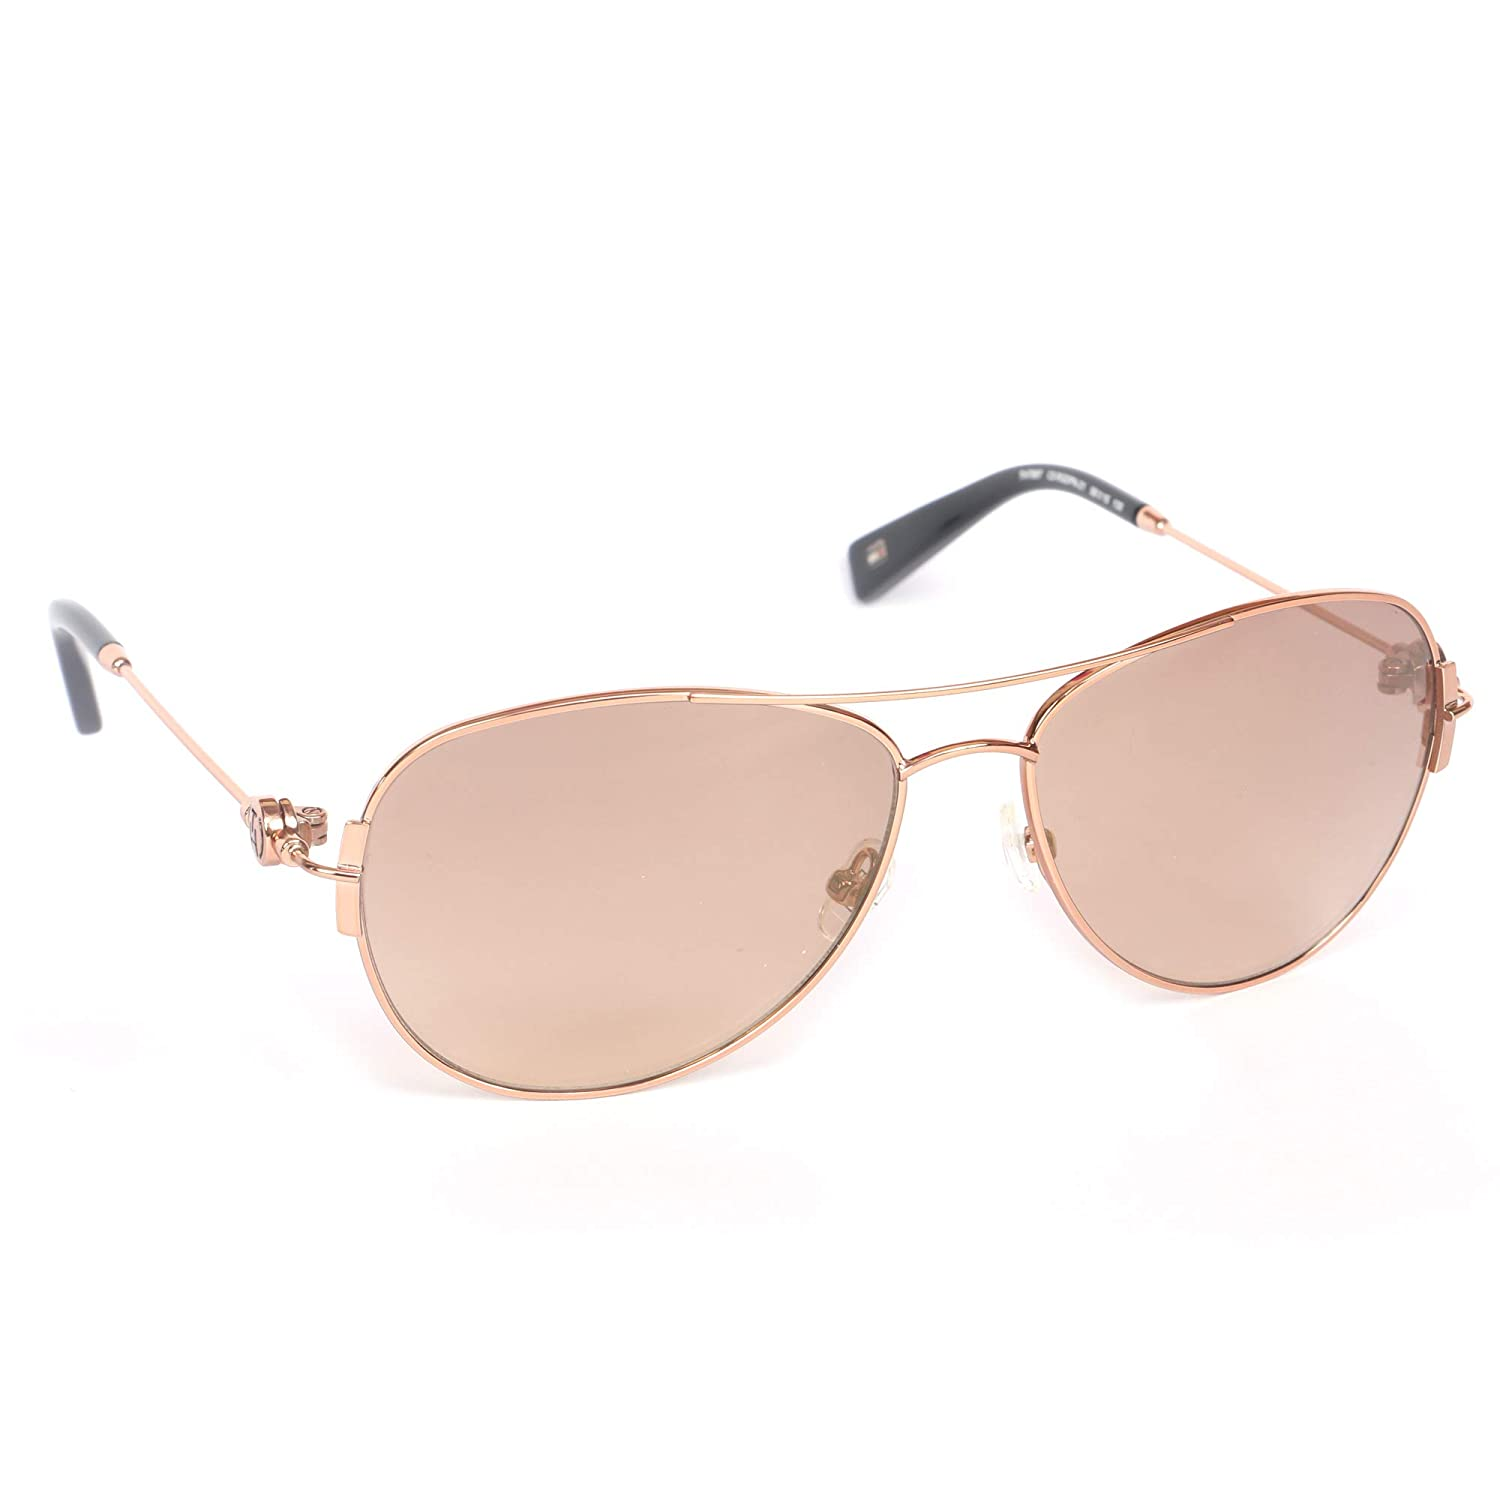 43ff419a97ae Tommy Hilfiger Mirrored Aviator Unisex Sunglasses - (Tommy Hilfiger 7887  Rgpn-21 C5 58 S|58|Gold Color): Amazon.in: Clothing & Accessories